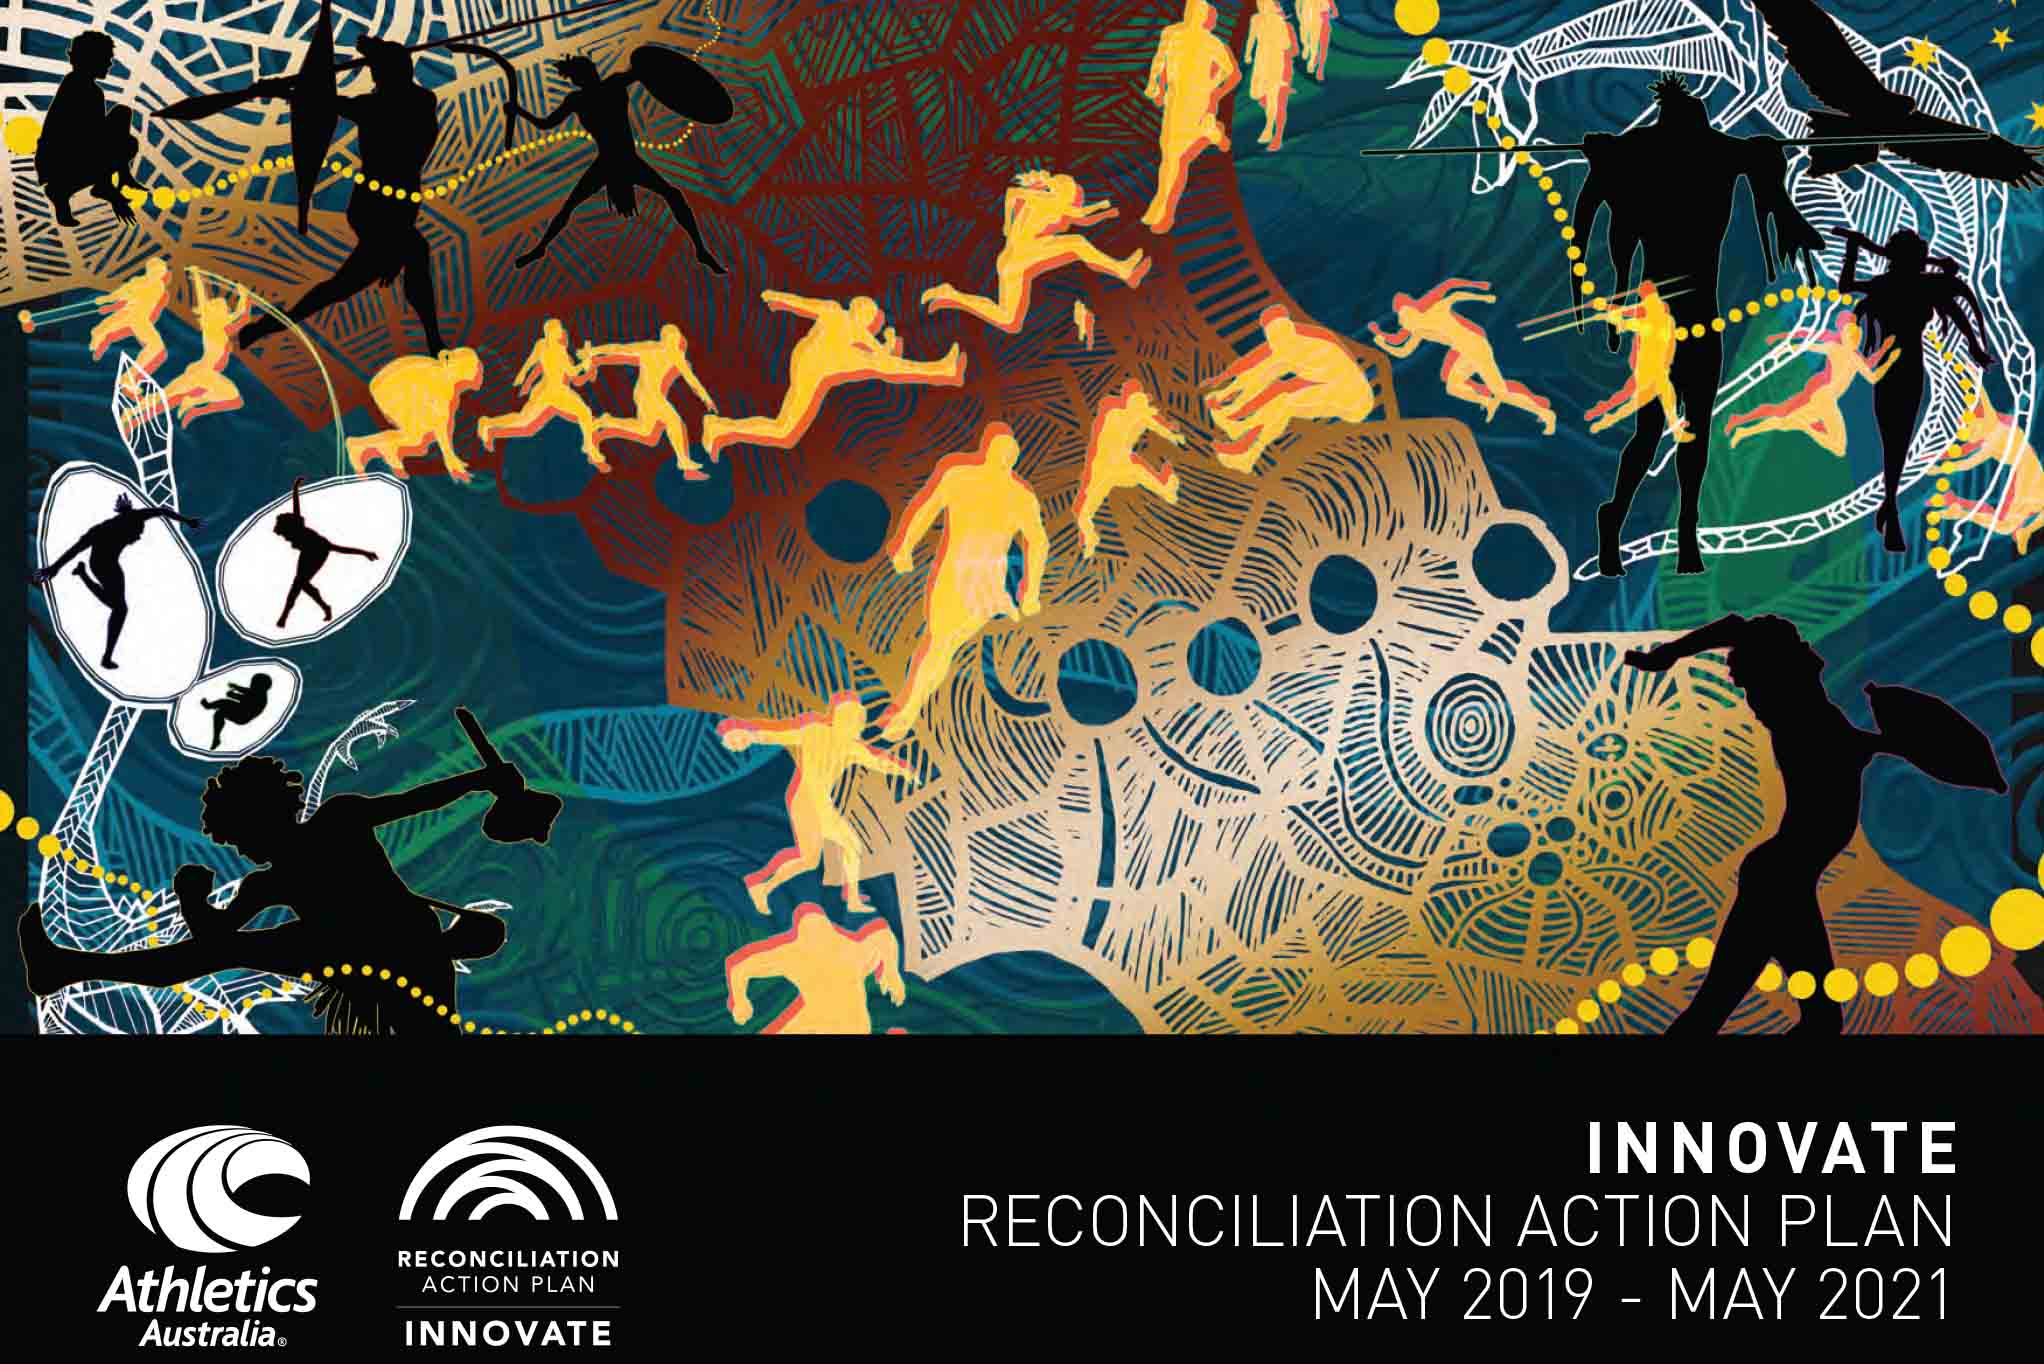 Image of Indigenous art depicting athletics activities. The Athletics Australia and Reconciliation Action Plan logo appear at the bottom. Text reads Innovate Reconciliation Action Plan May 2019 - May 2021